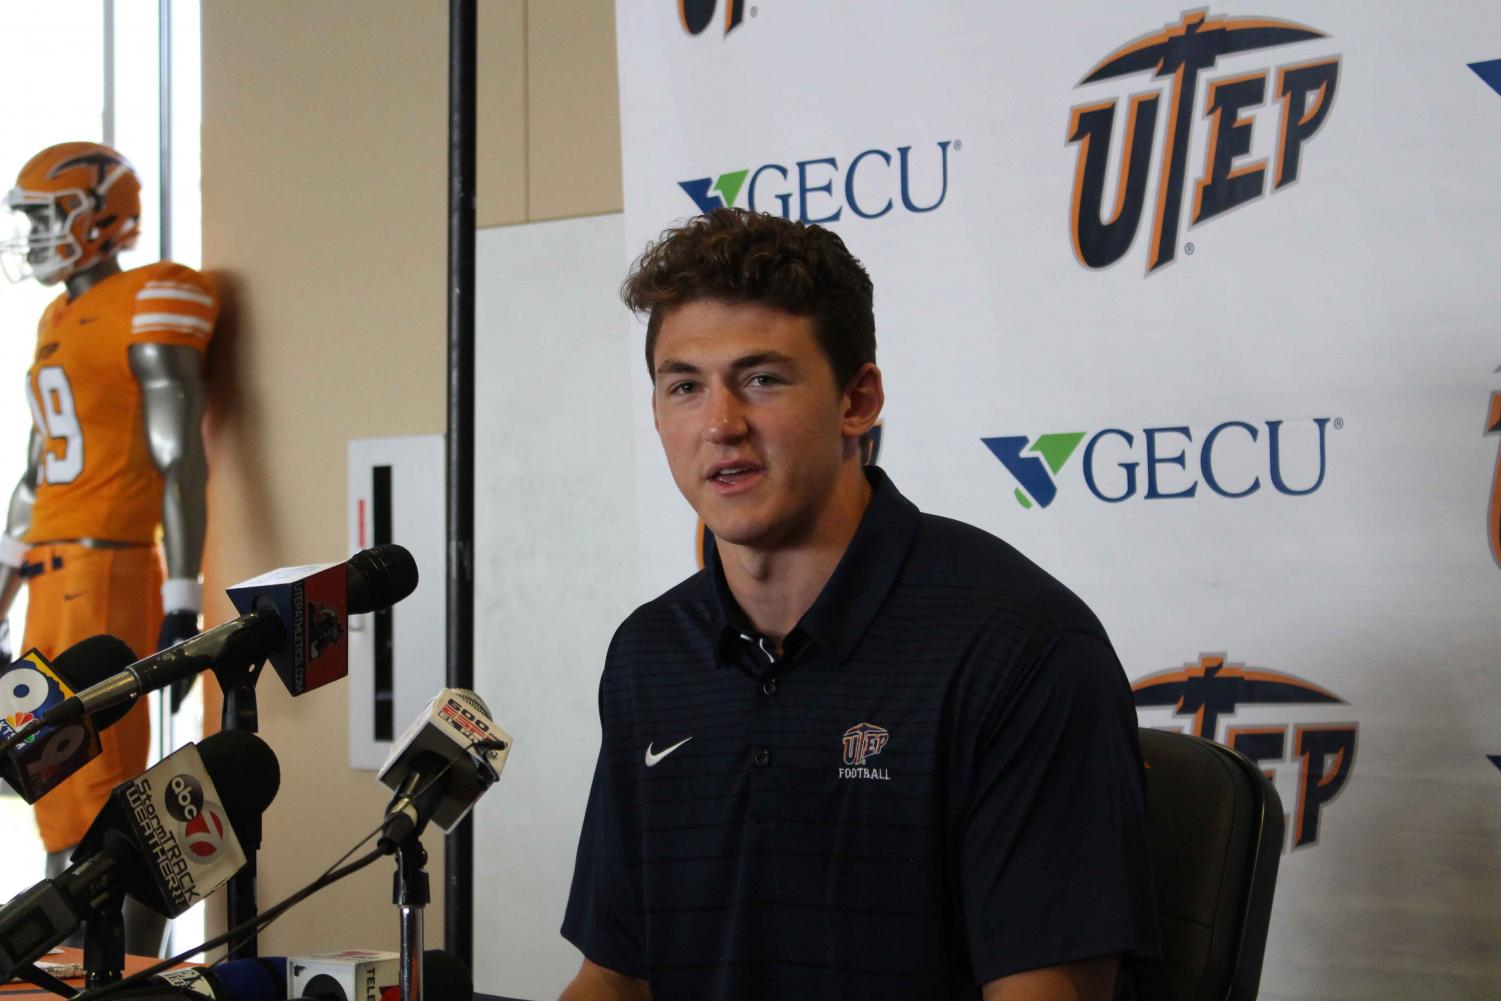 Redshirt junior tight end Luke Laufenberg was introduced on National Signing Day as part of the 2019 UTEP football recruiting class. Luke died early Thursday morning after a long battle with cancer.